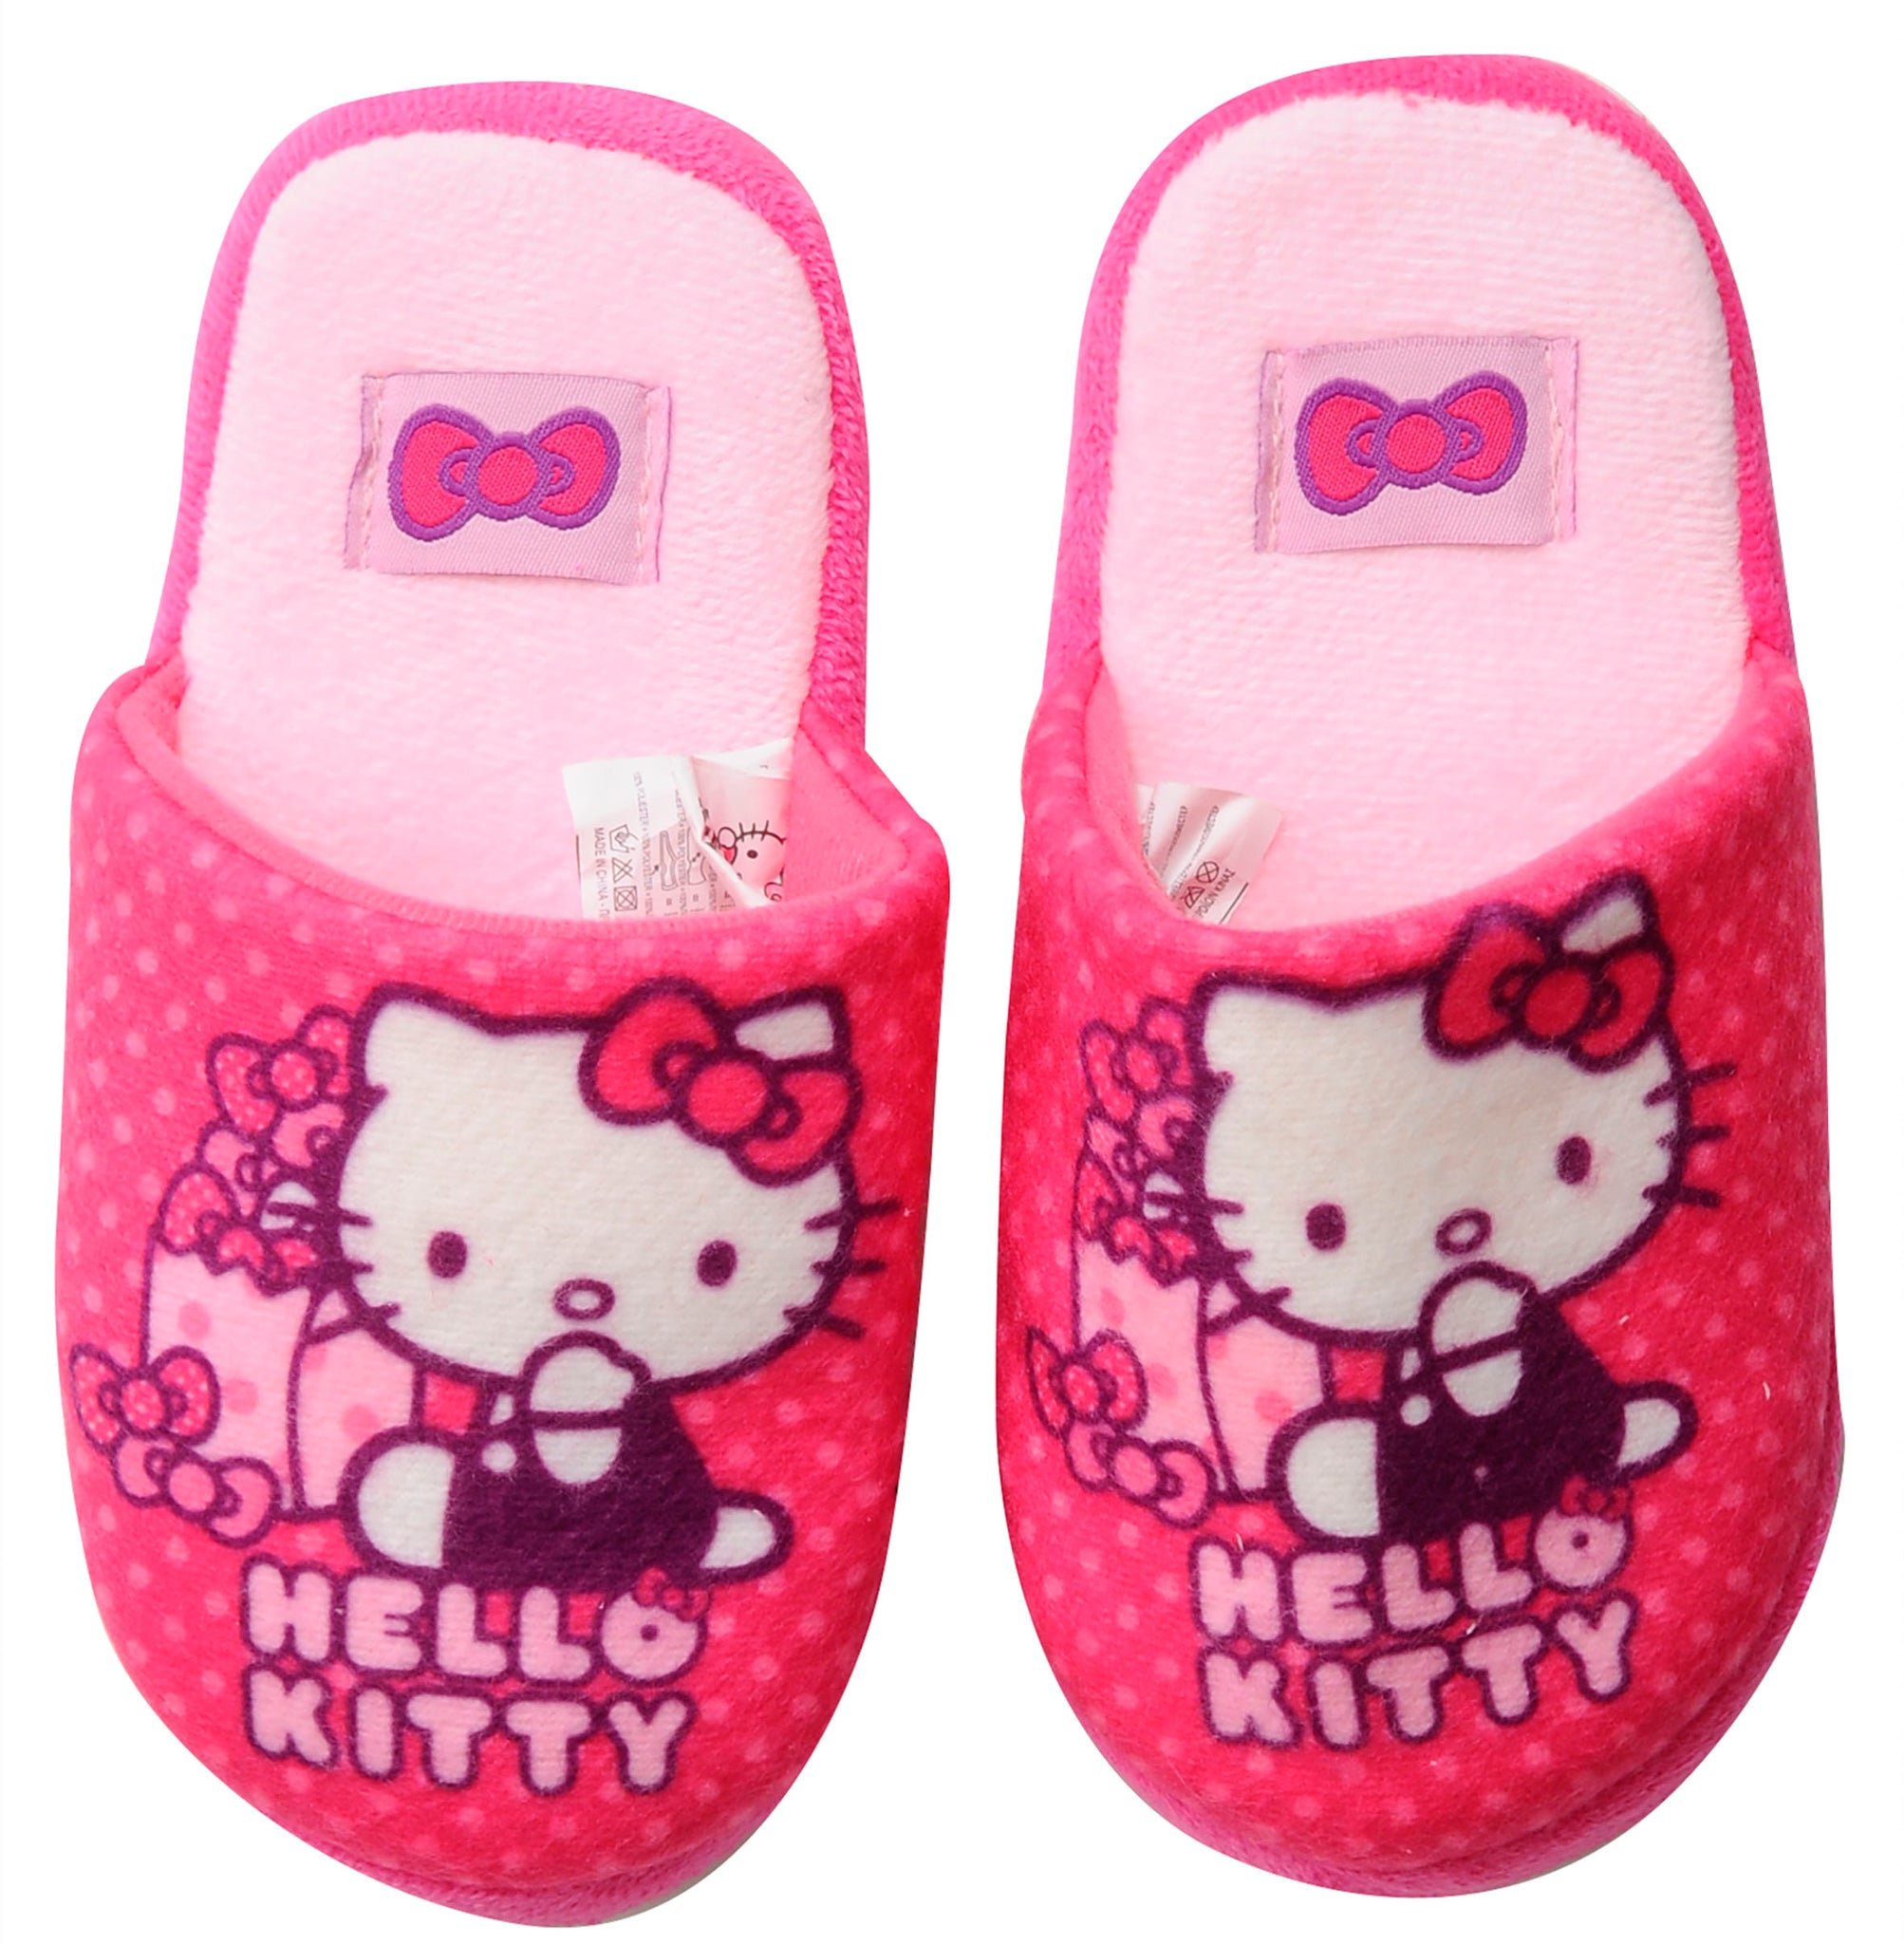 Hello Kitty slippers with bow design